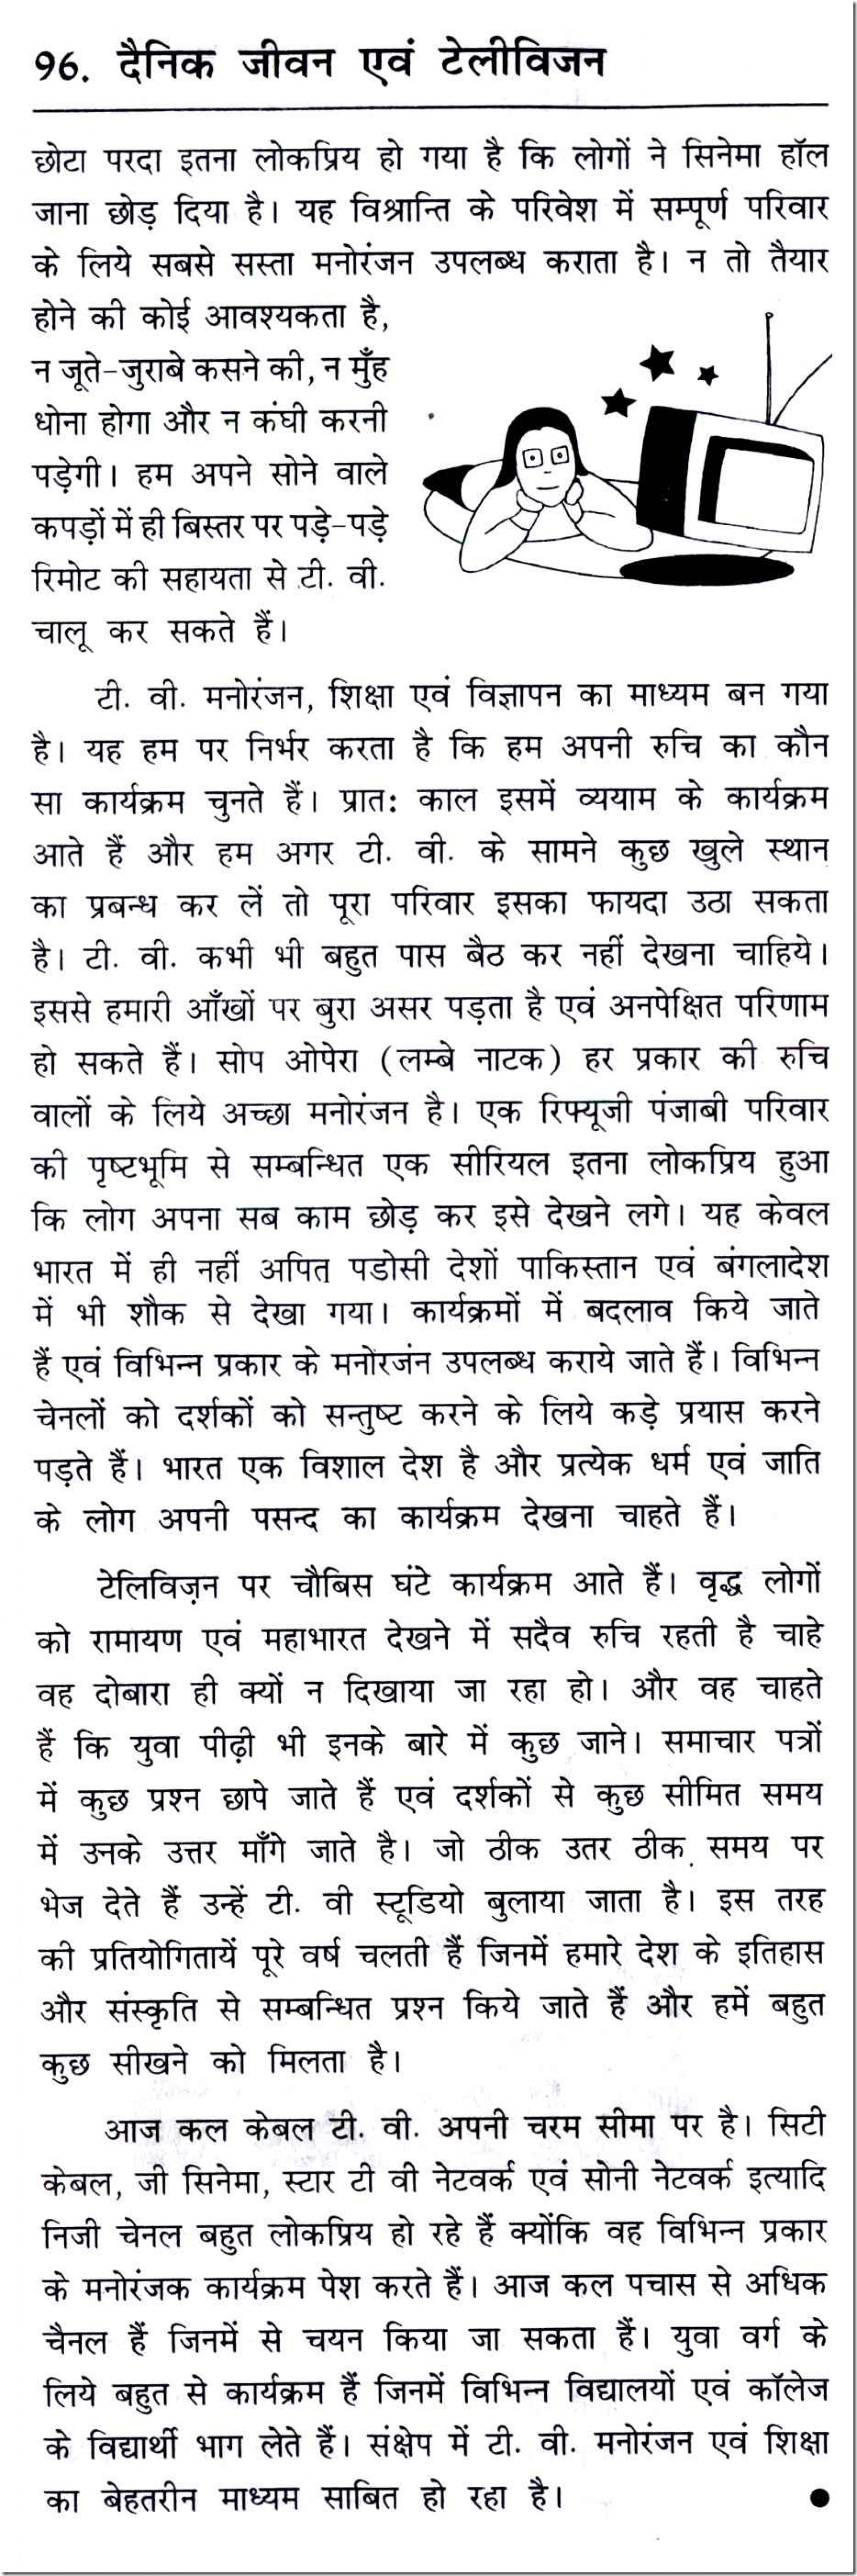 012 Essay Example 10098 Thumb Cleanliness In Sensational Hindi Is Godliness School 1920